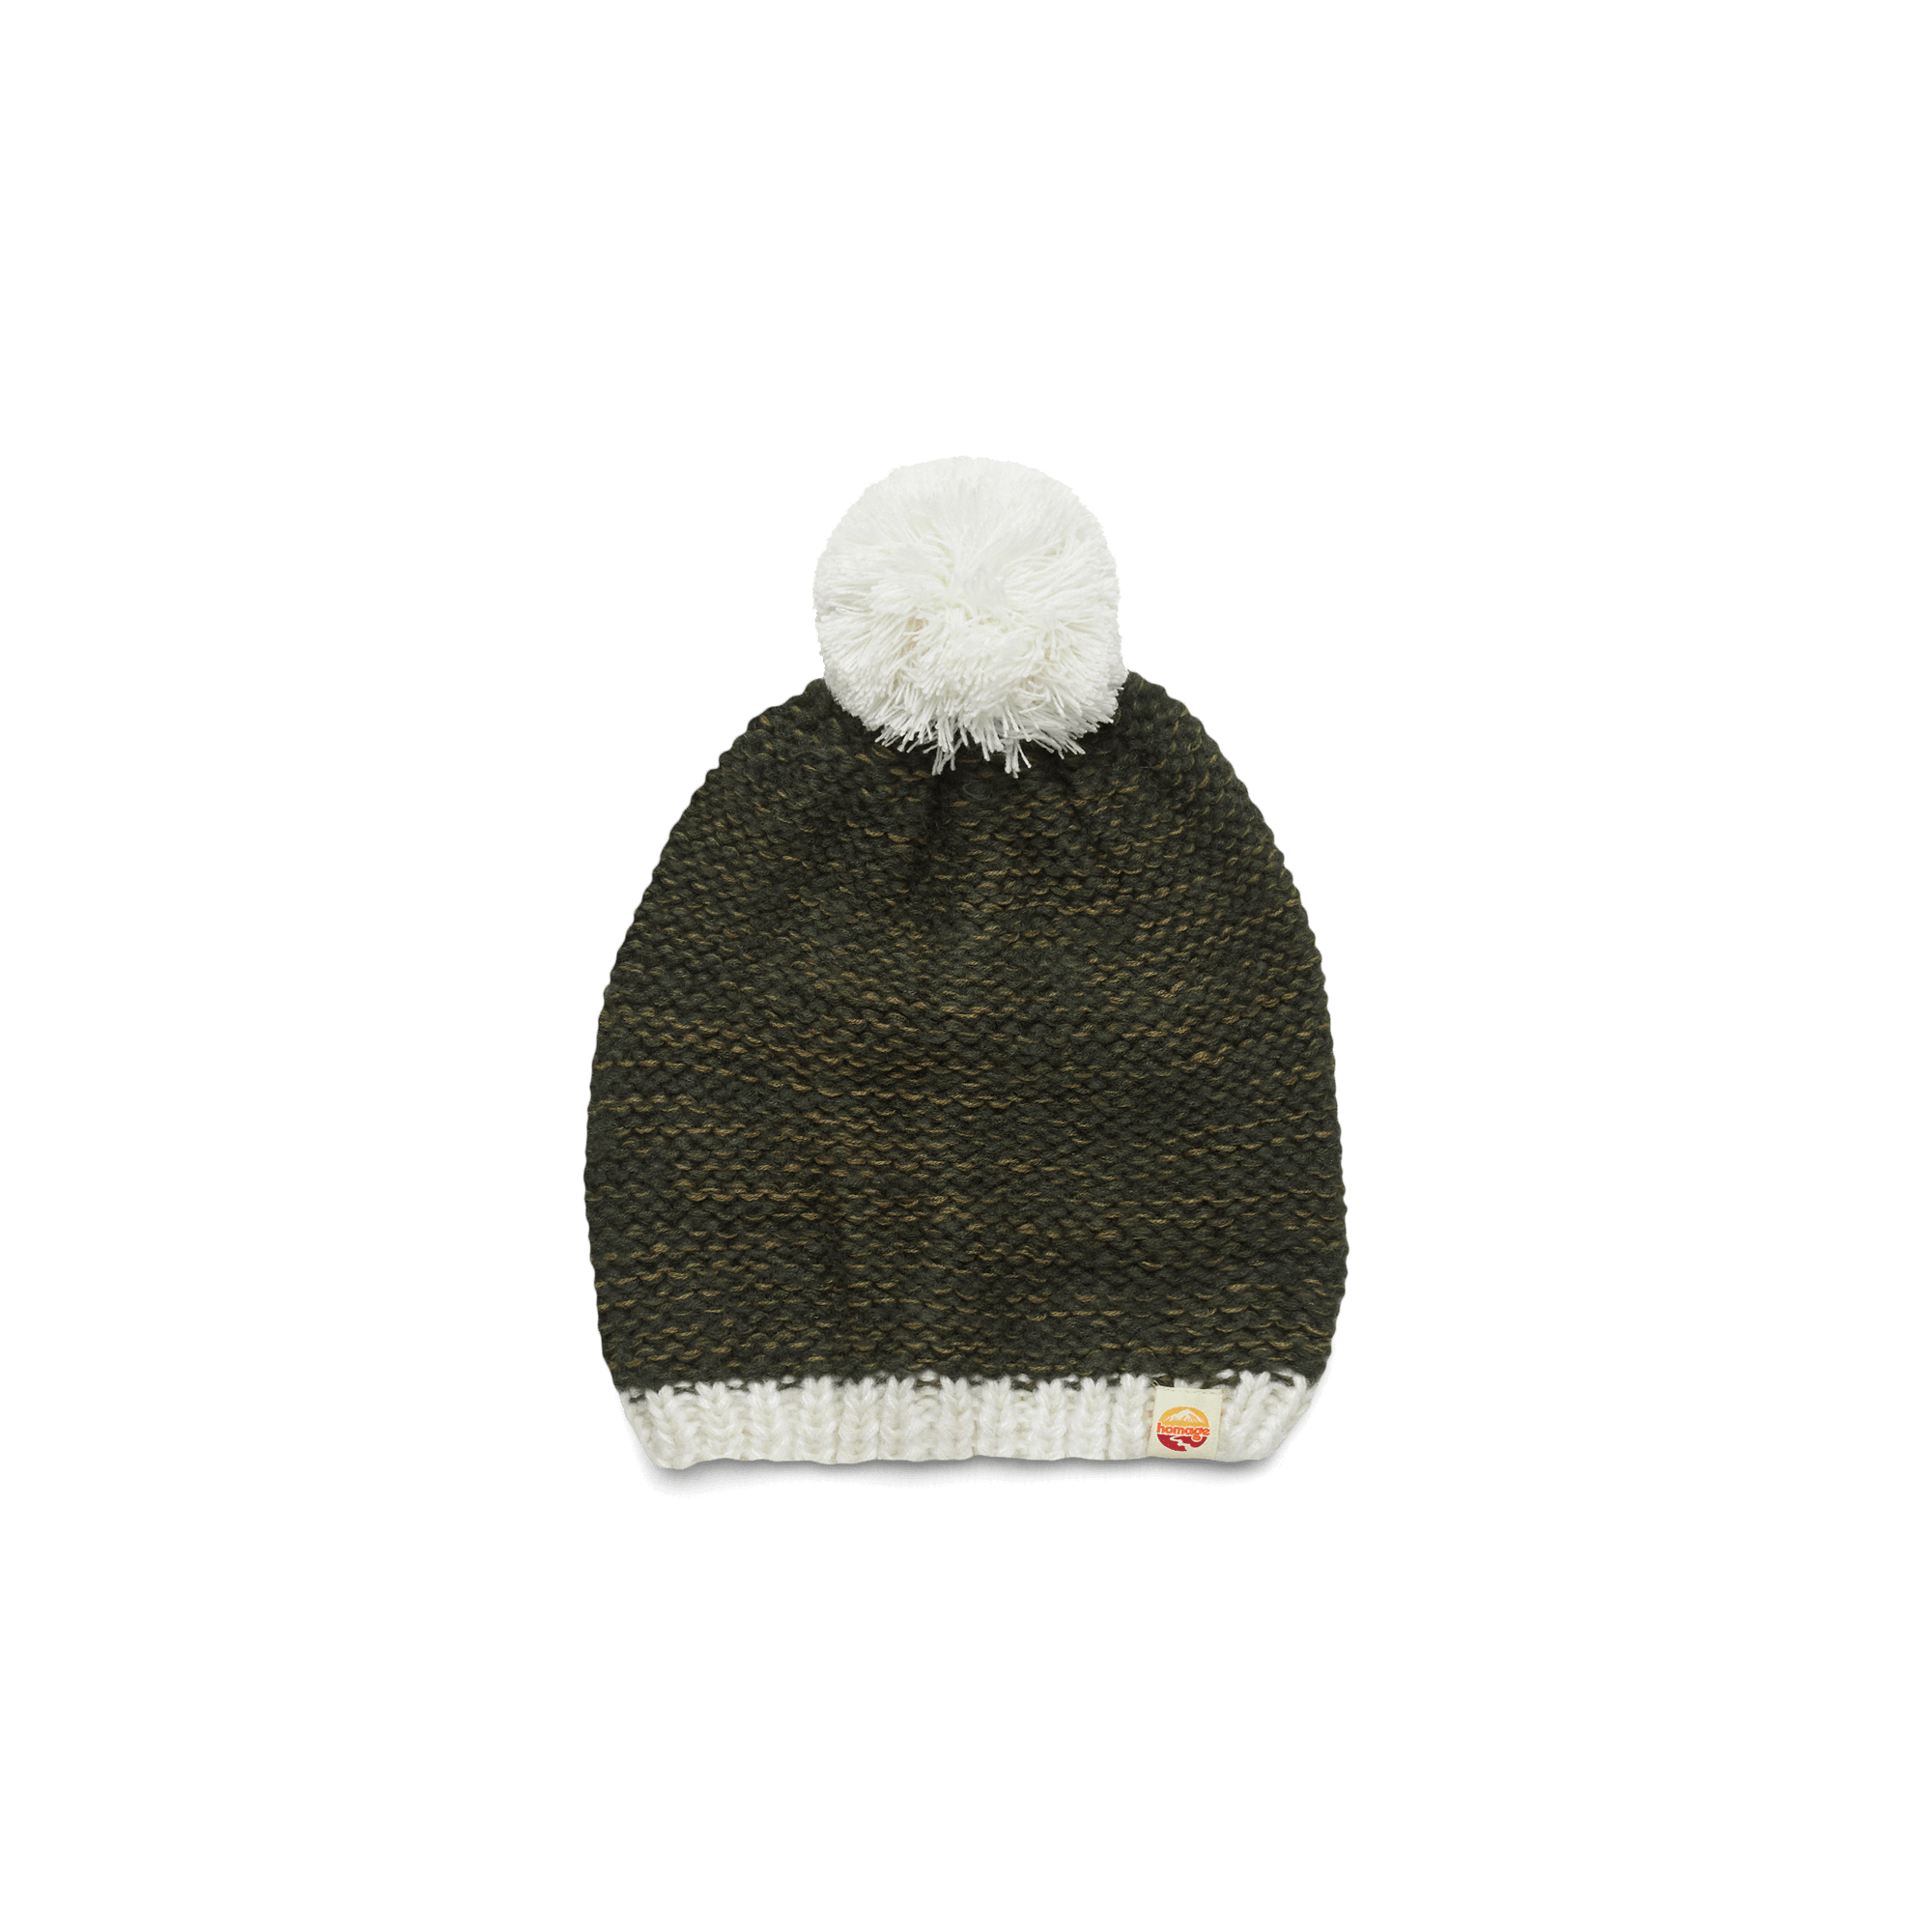 d4c0bf963c7 Retro Headwear Including Snapbacks Winter Hats And More – HOMAGE